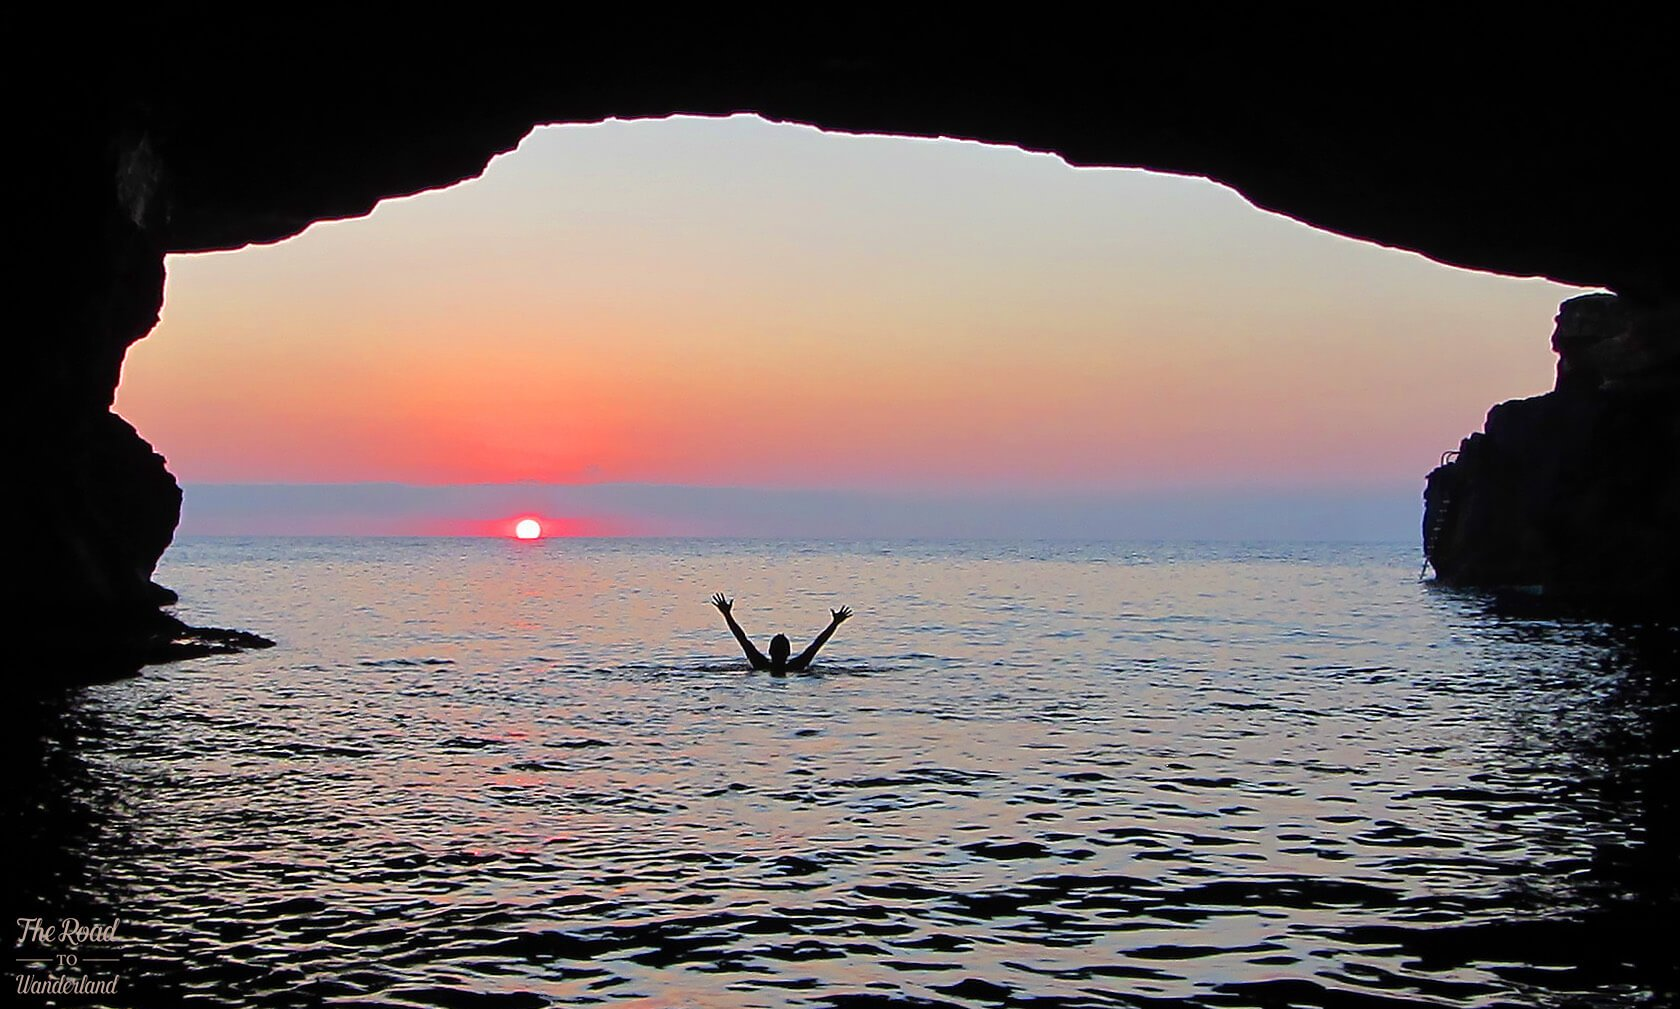 Swimming as the sun goes down...